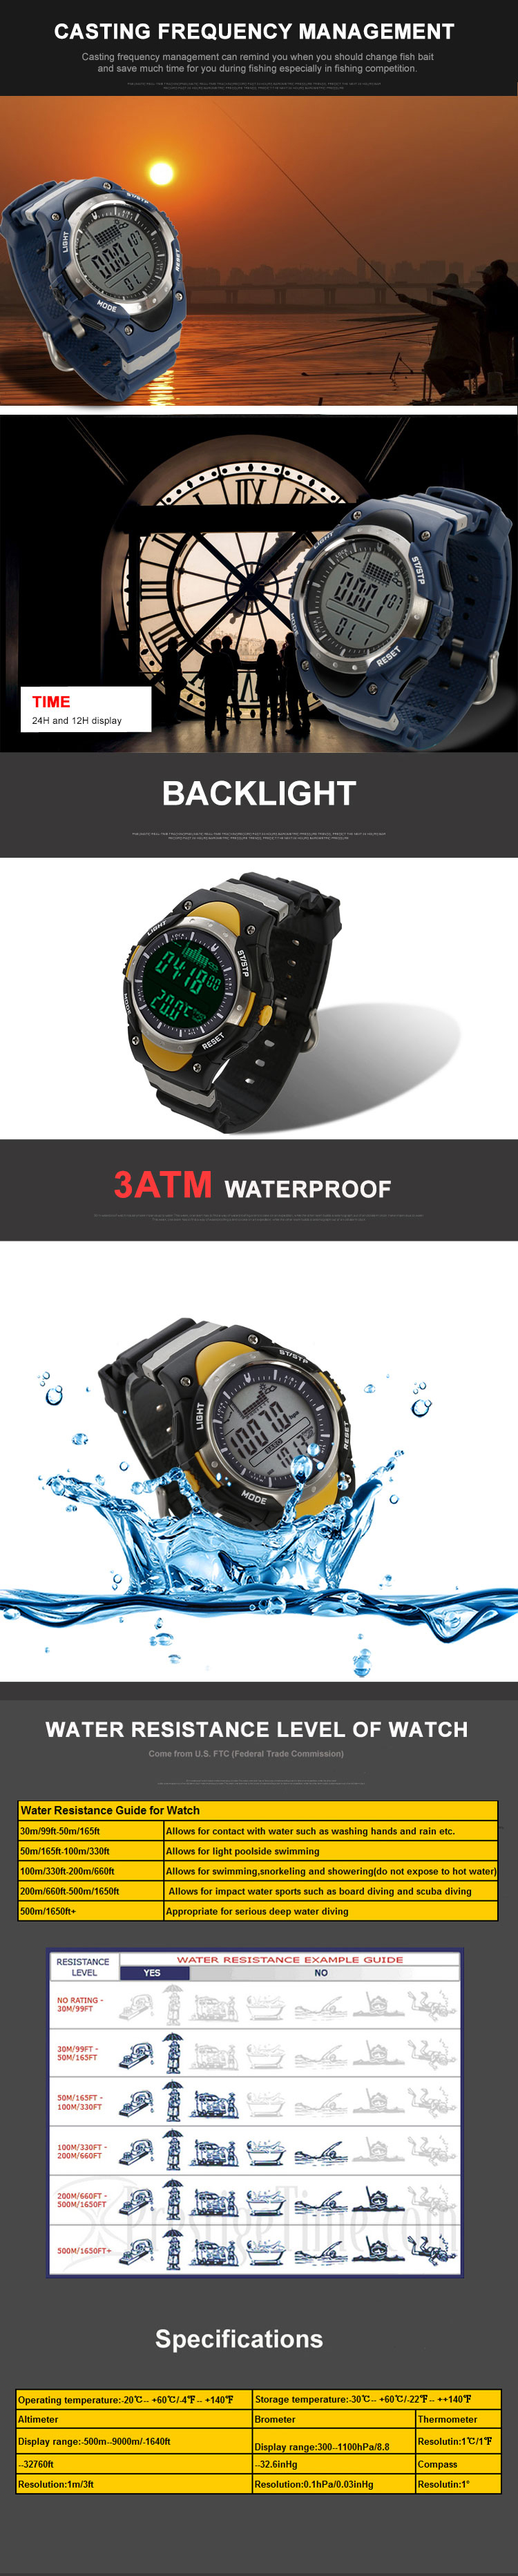 SUNROAD Fishing Barometer Watch FR716A FR718A 3ATM Waterproof Multifunctional Altimeter